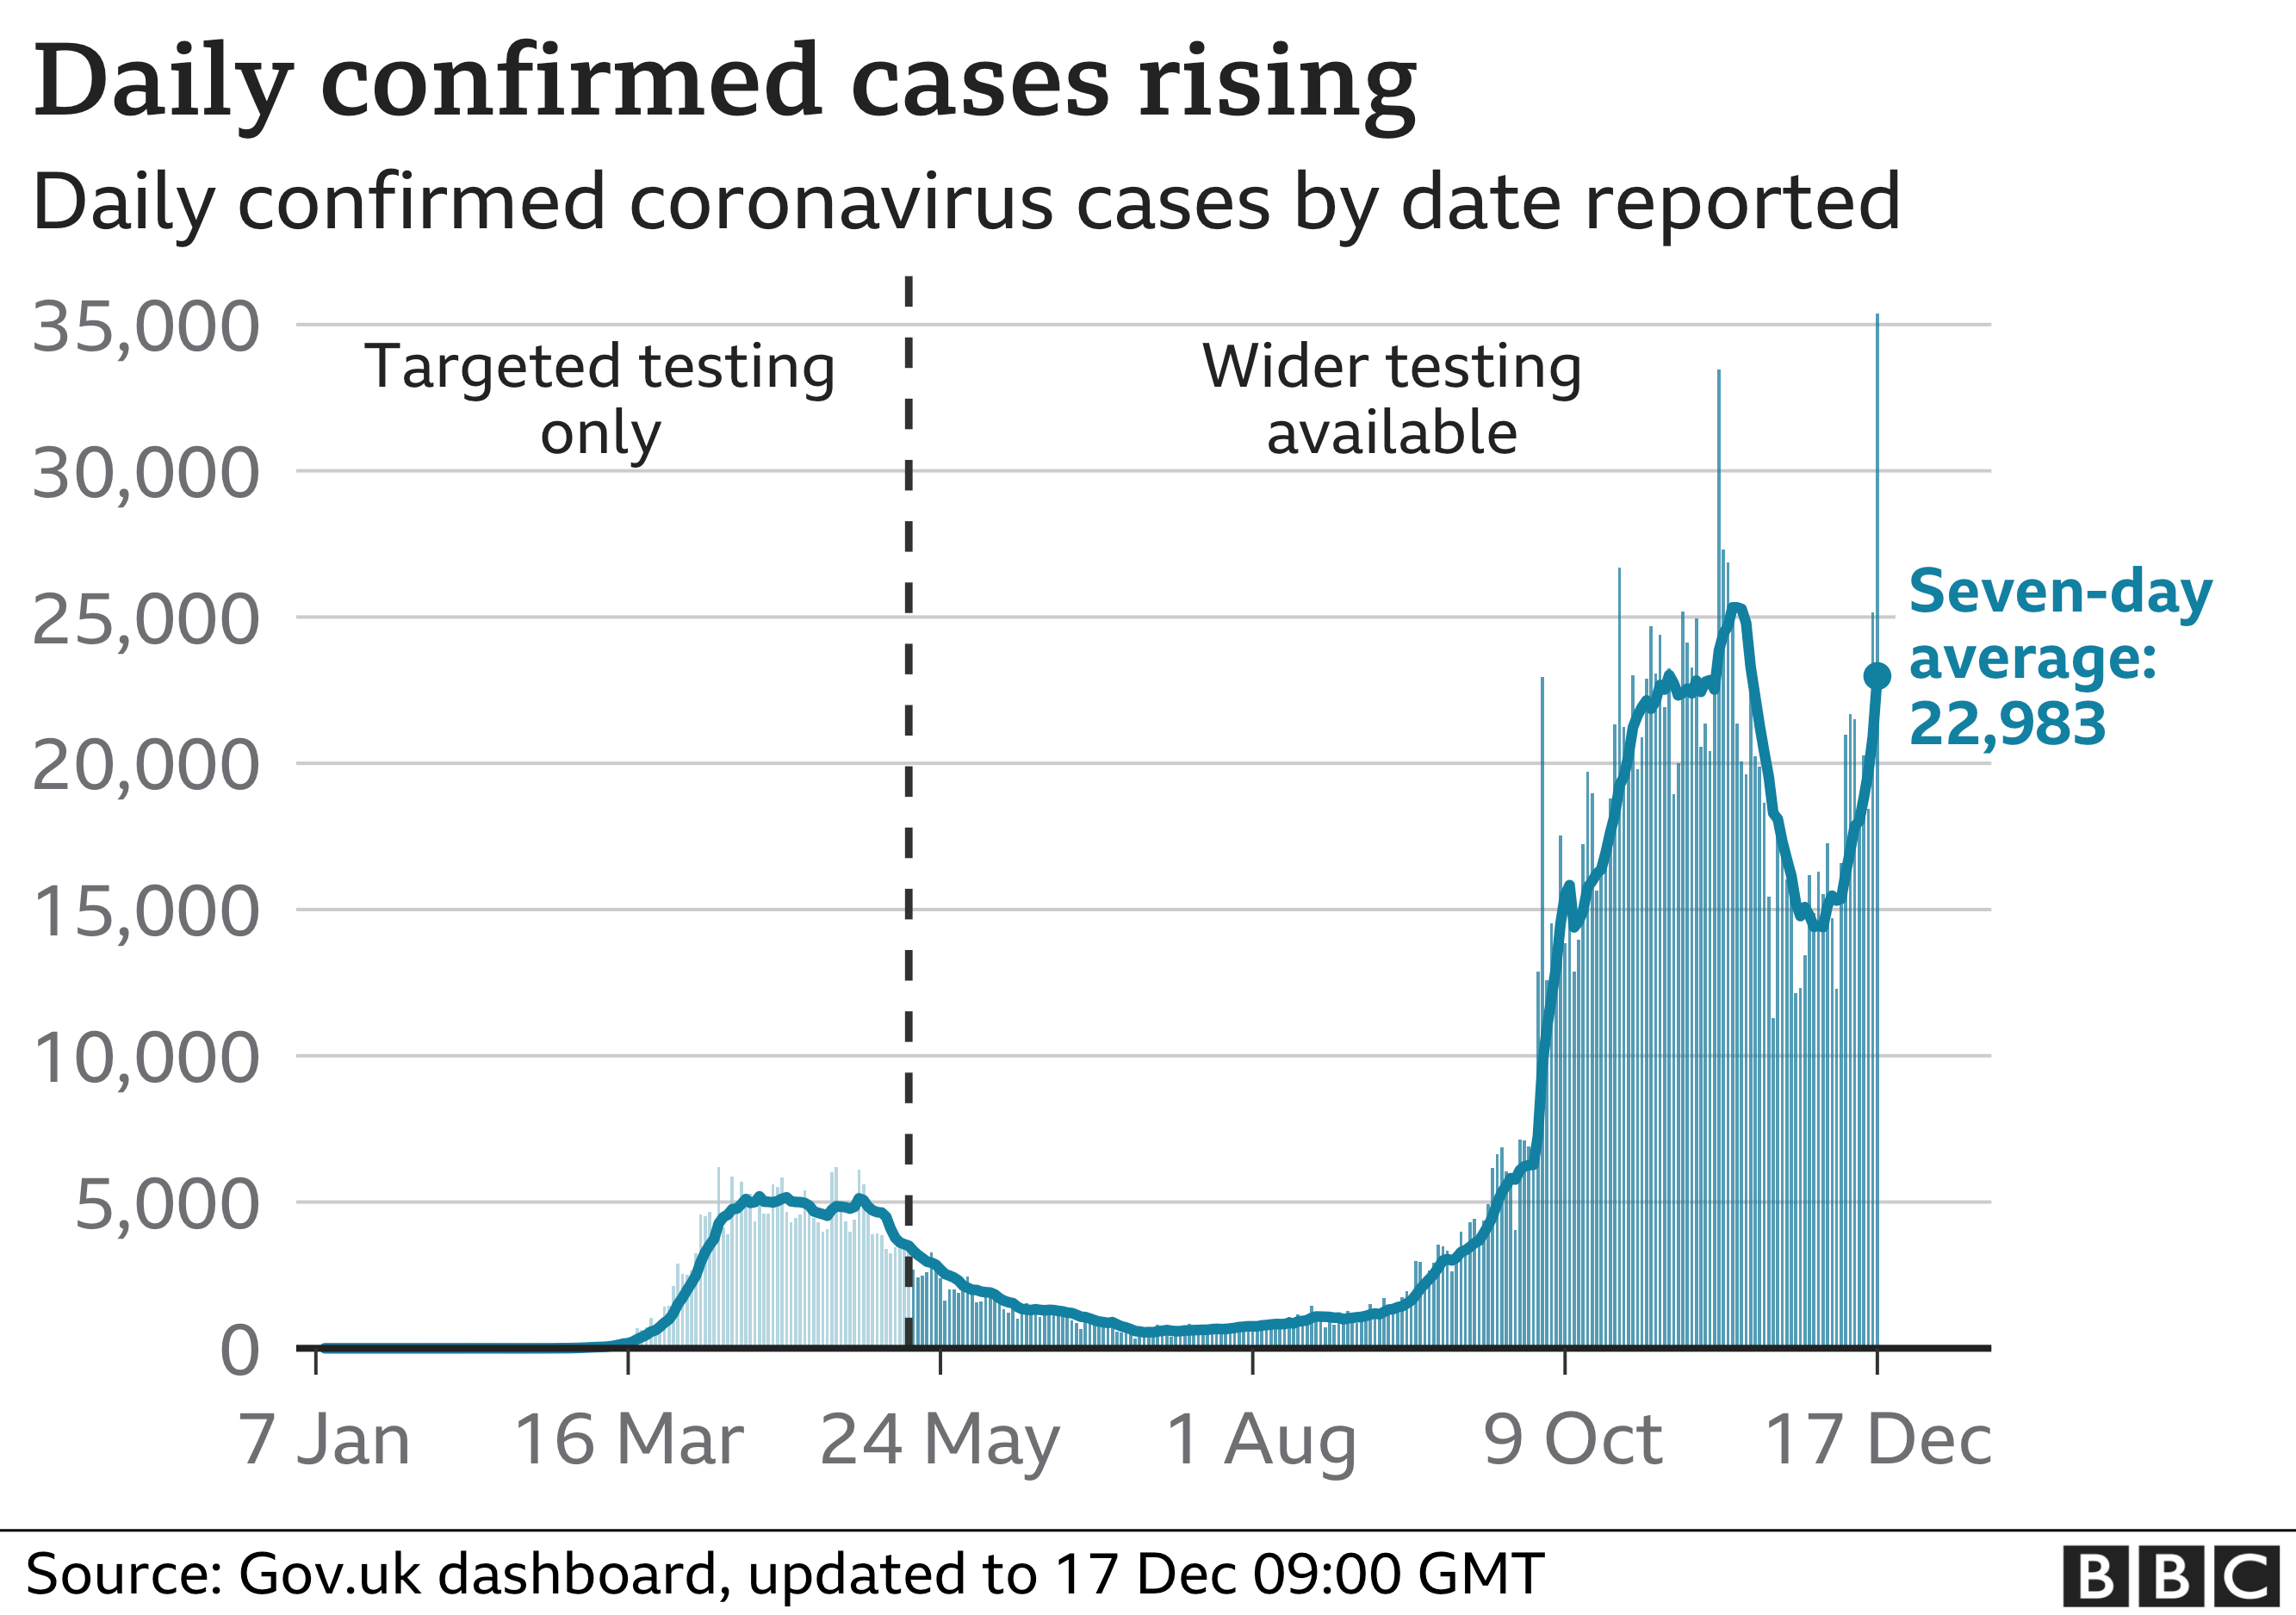 Graph showing daily confirmed coronavirus cases in the UK